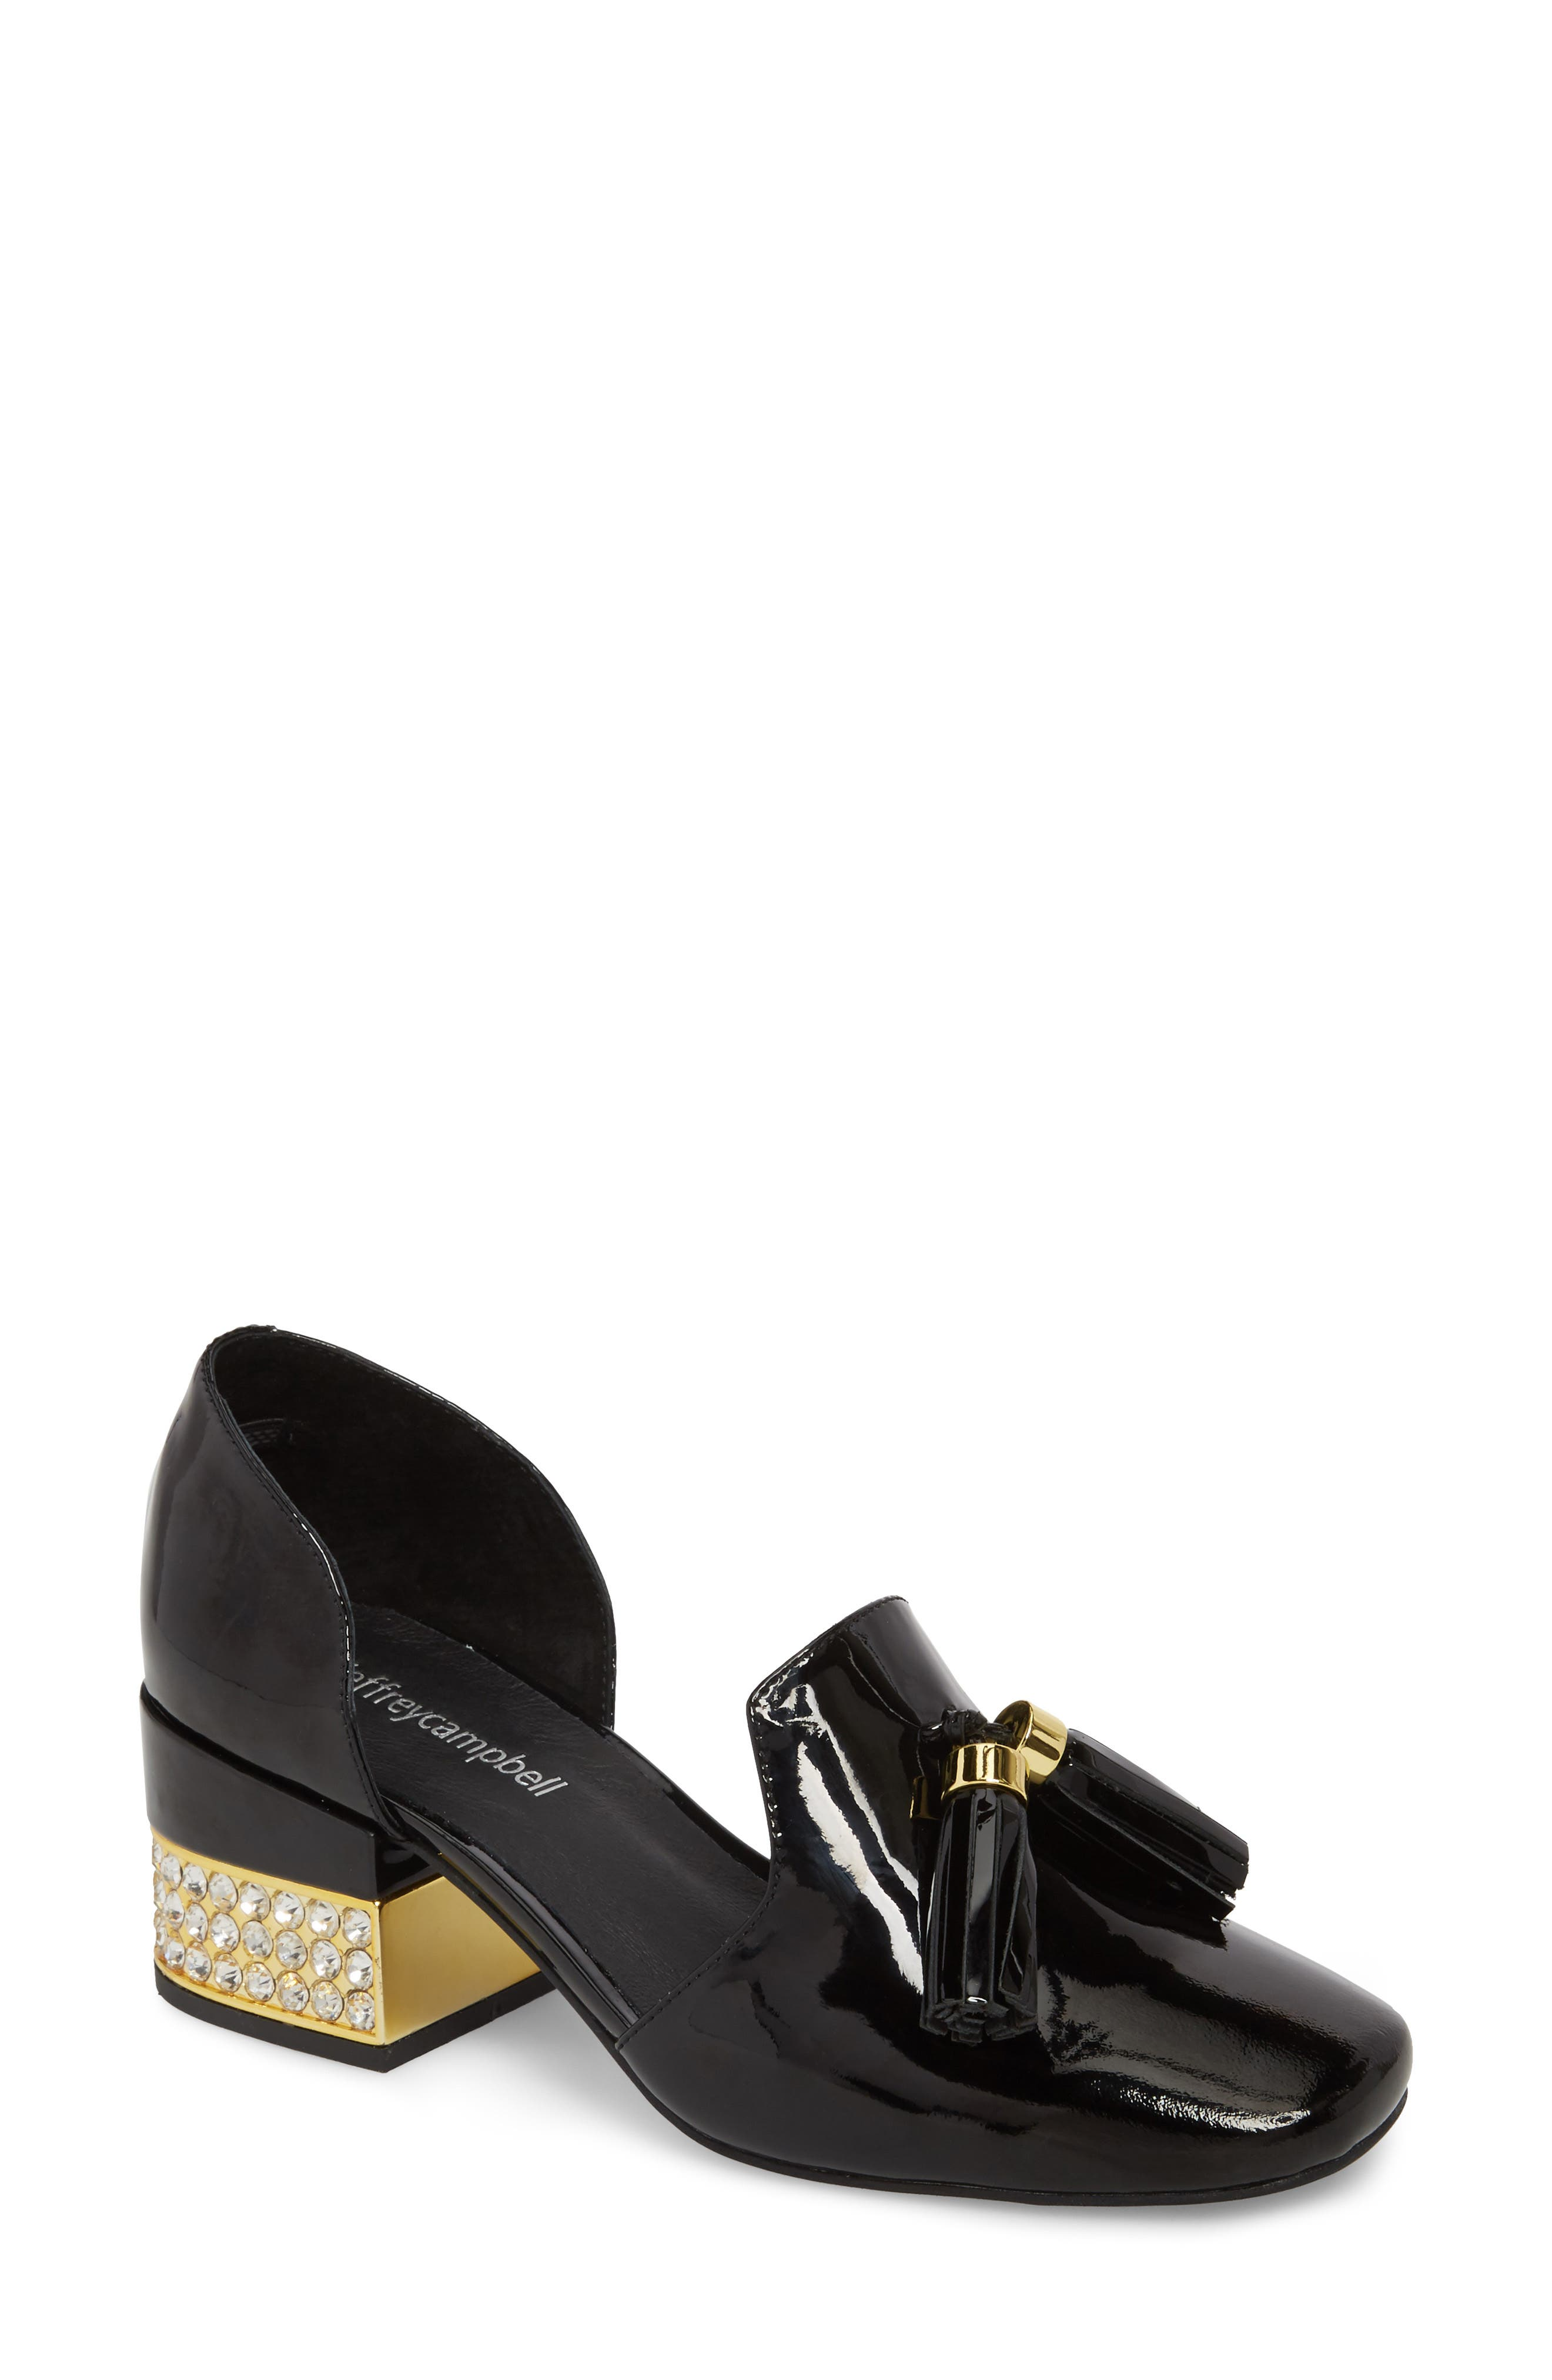 Genial Statement Heel d'Orsay Pump,                         Main,                         color, Black Patent Leather